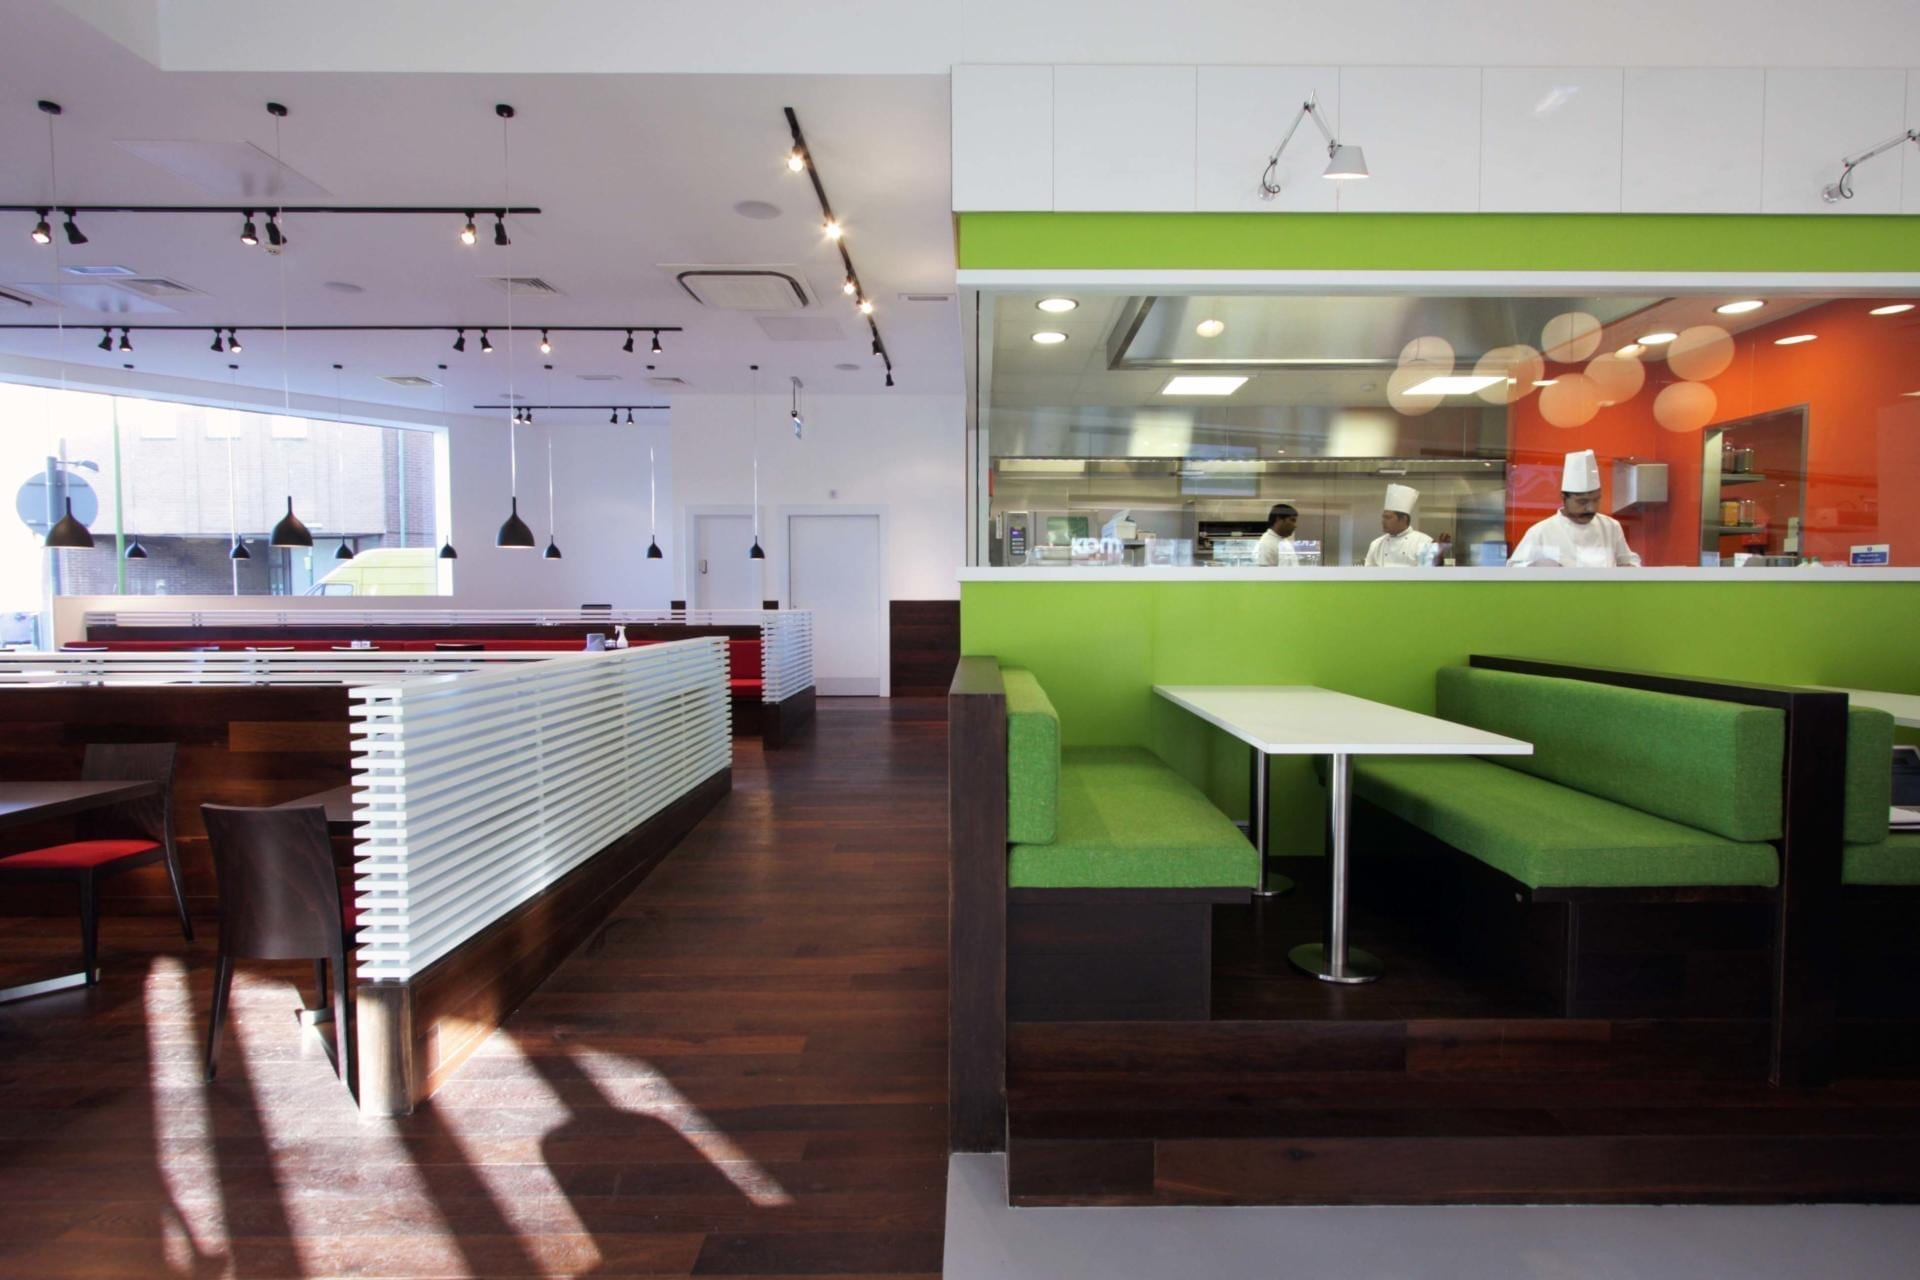 Oojam-Hemel-Hempstead-Indian-restaurant-and-kitchenFabrication-Stainless-Steel-Commercial-Kitchen-spacecatering_5